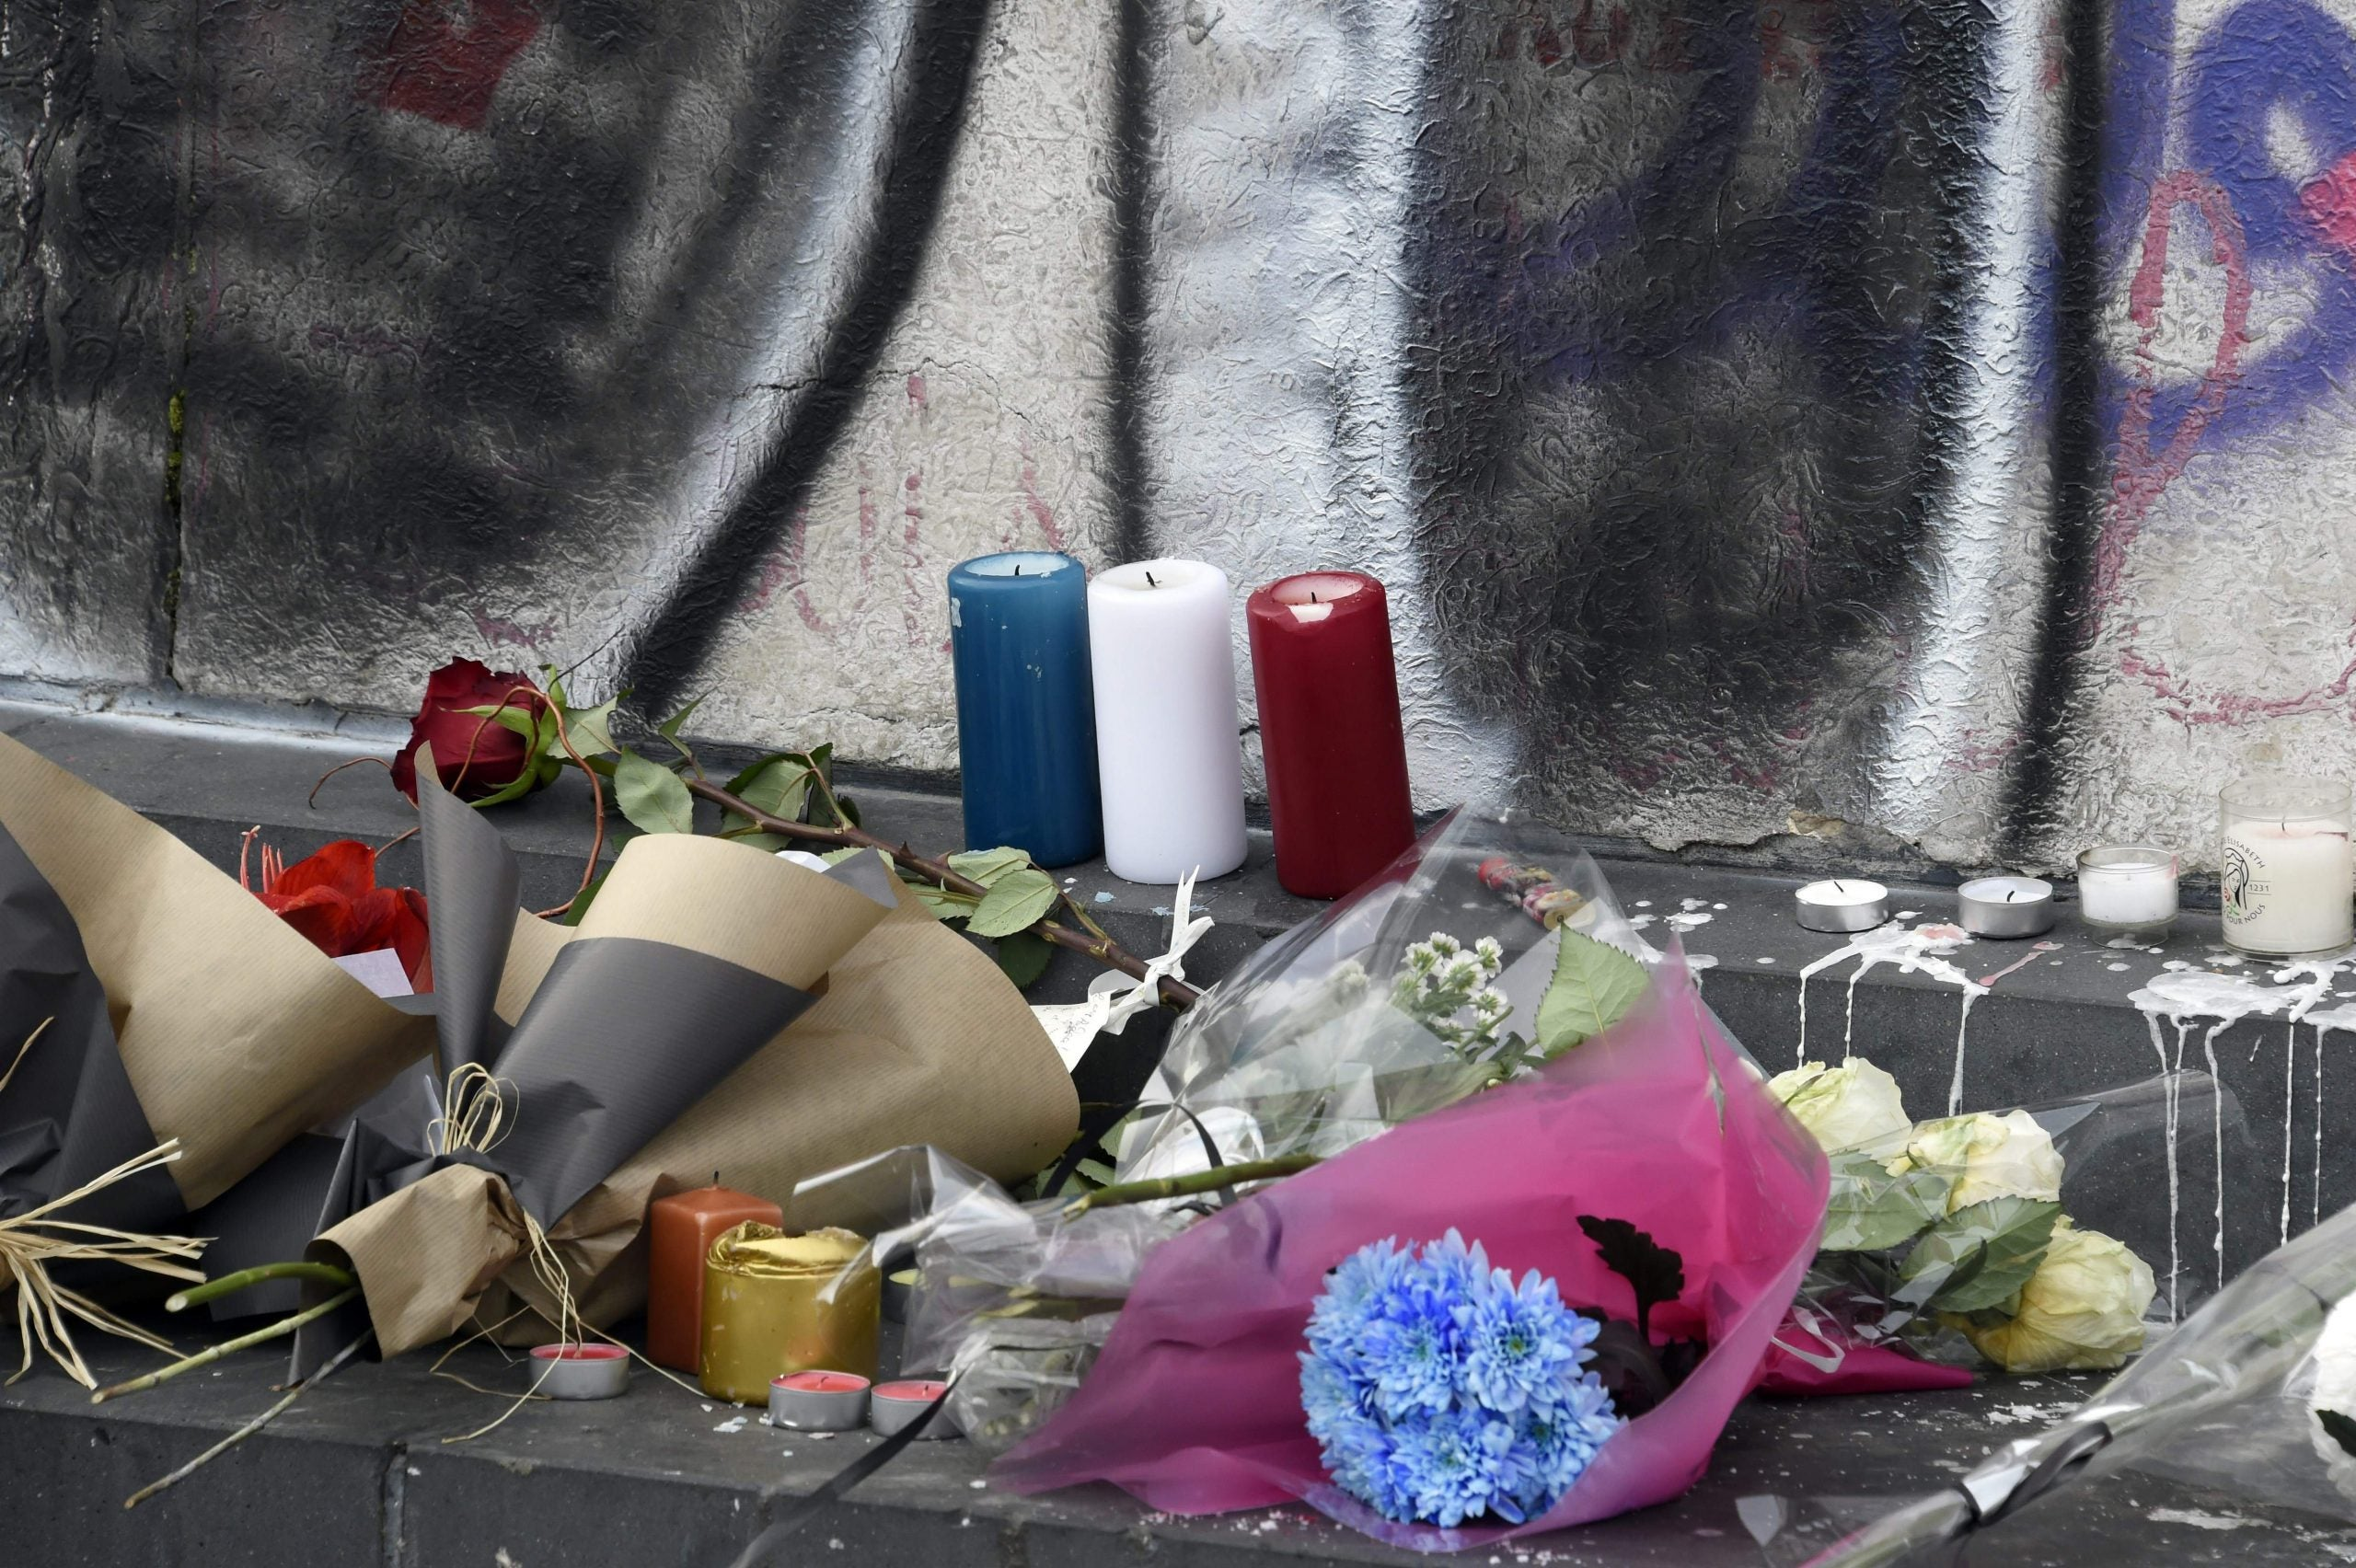 Paris was built to meet the needs of a police state. Floral tributes to the city's dead tell a very partial history